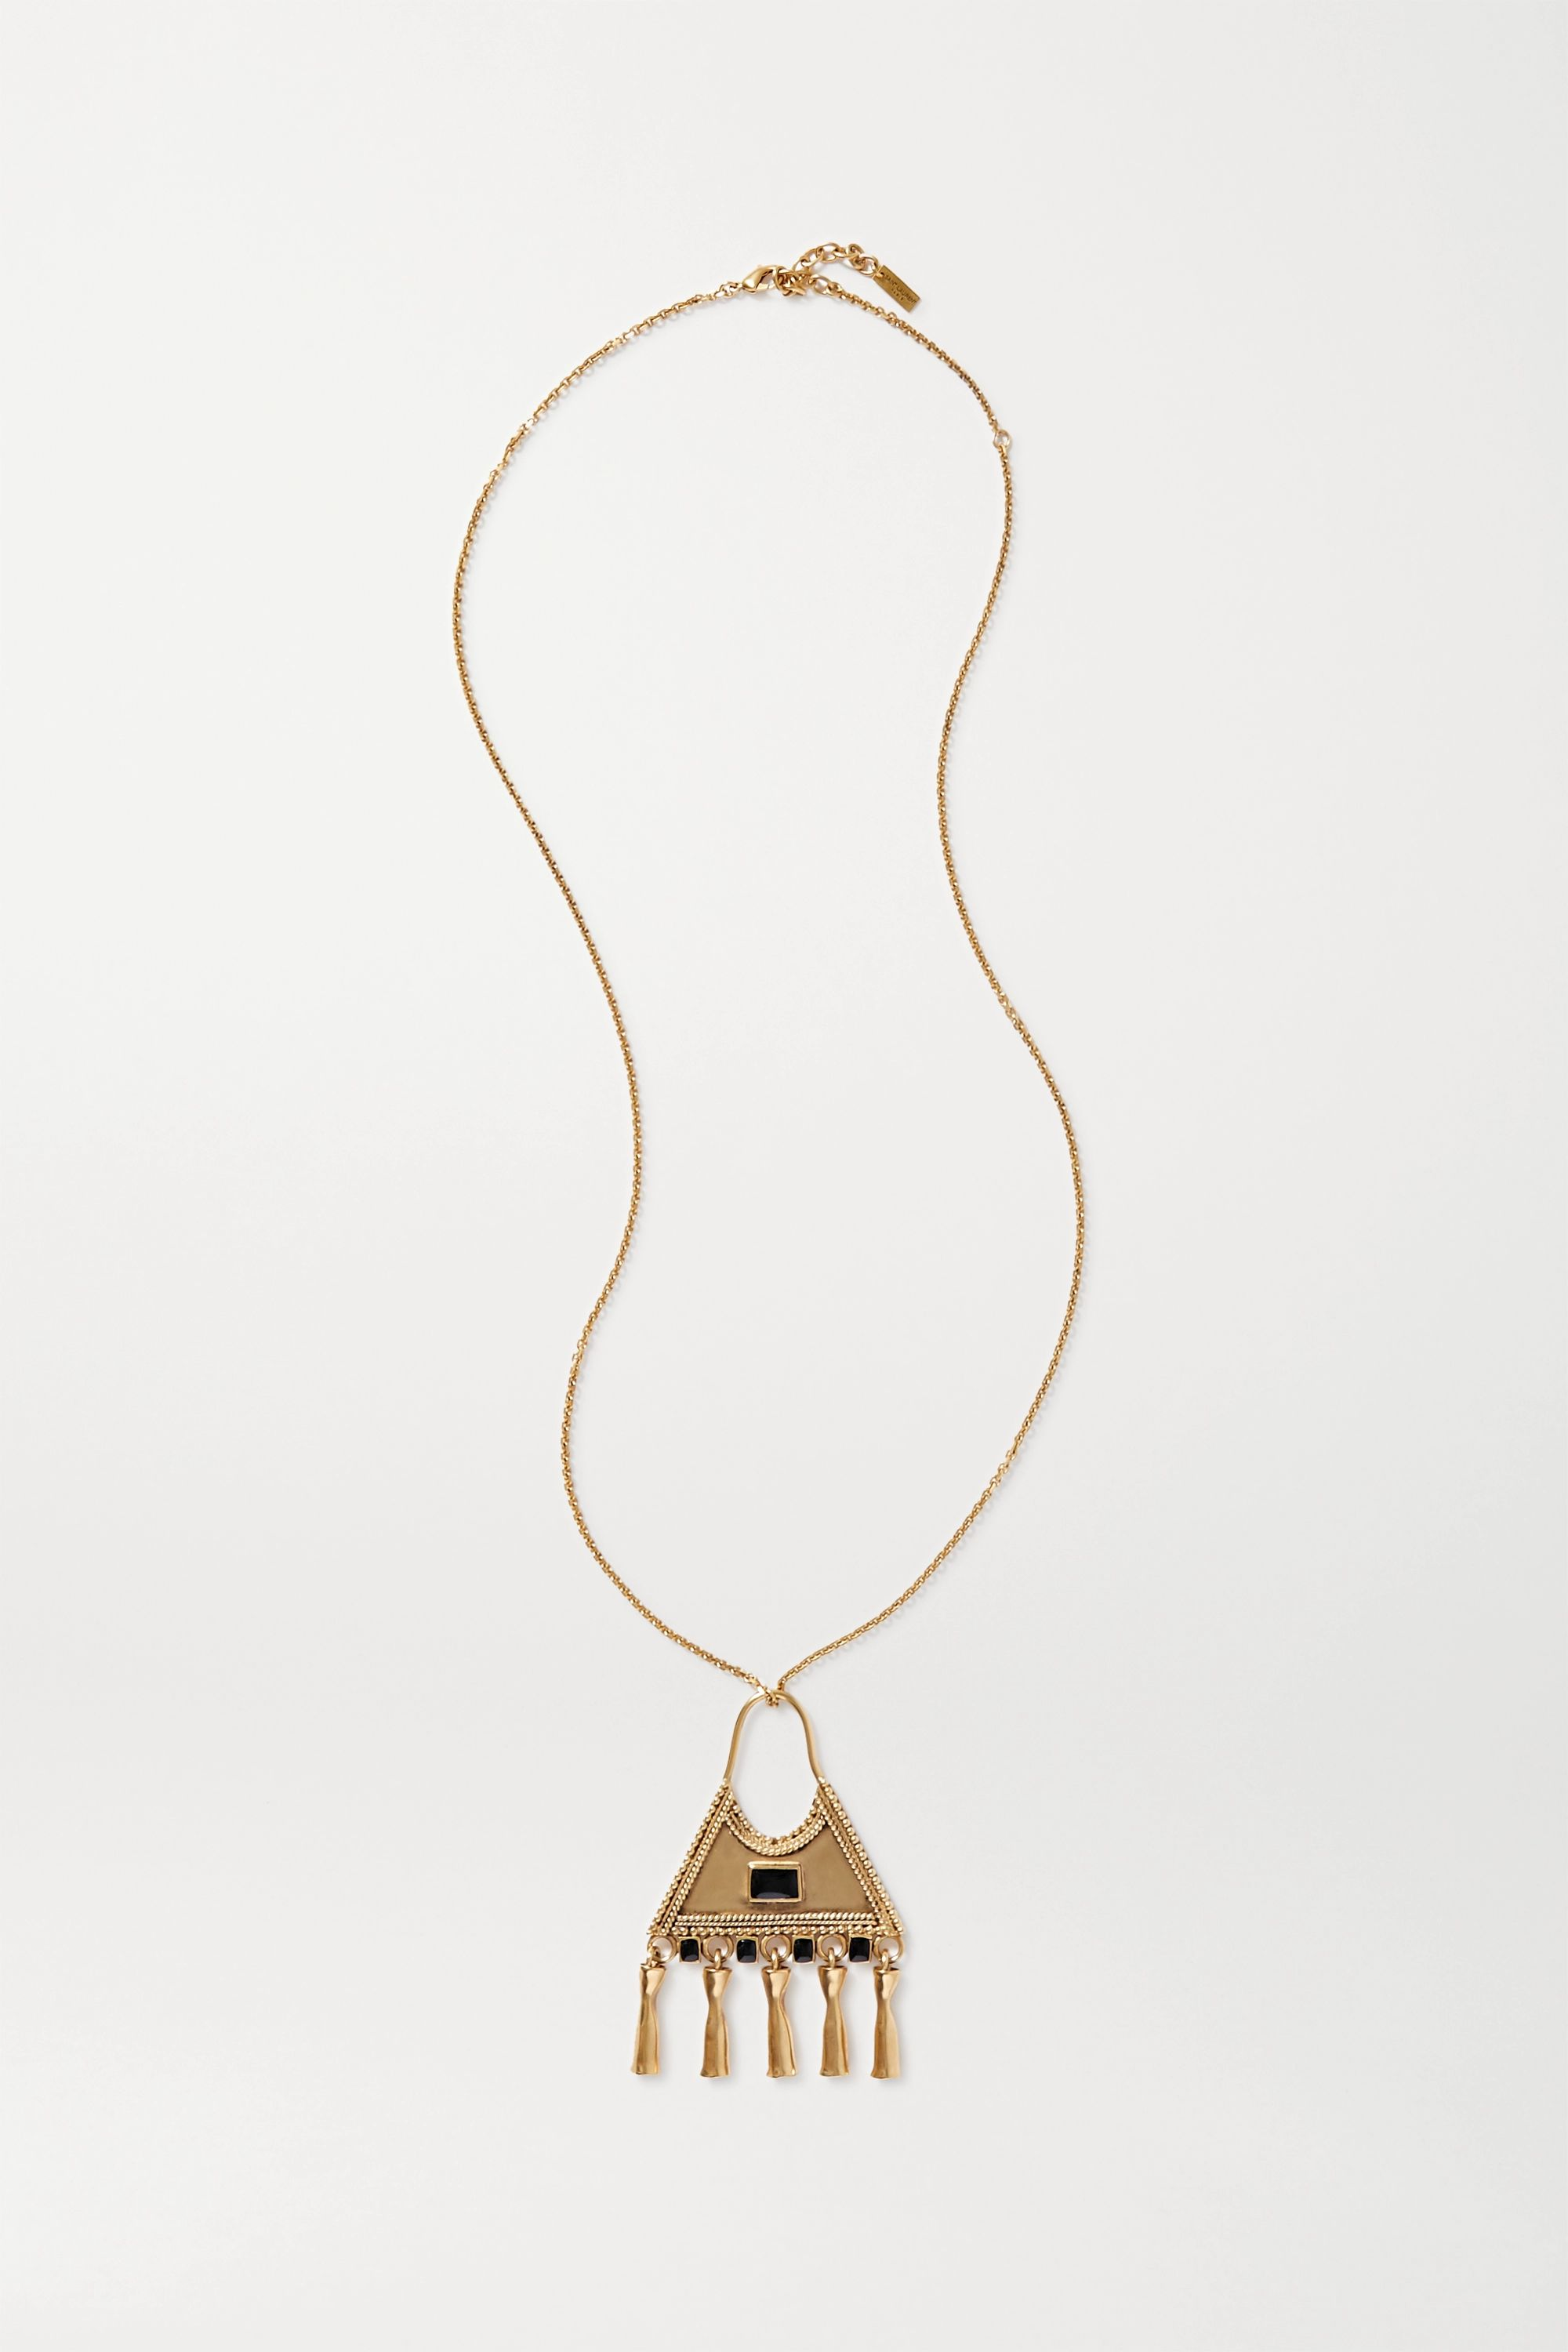 SAINT LAURENT Gold-tone and crystal necklace